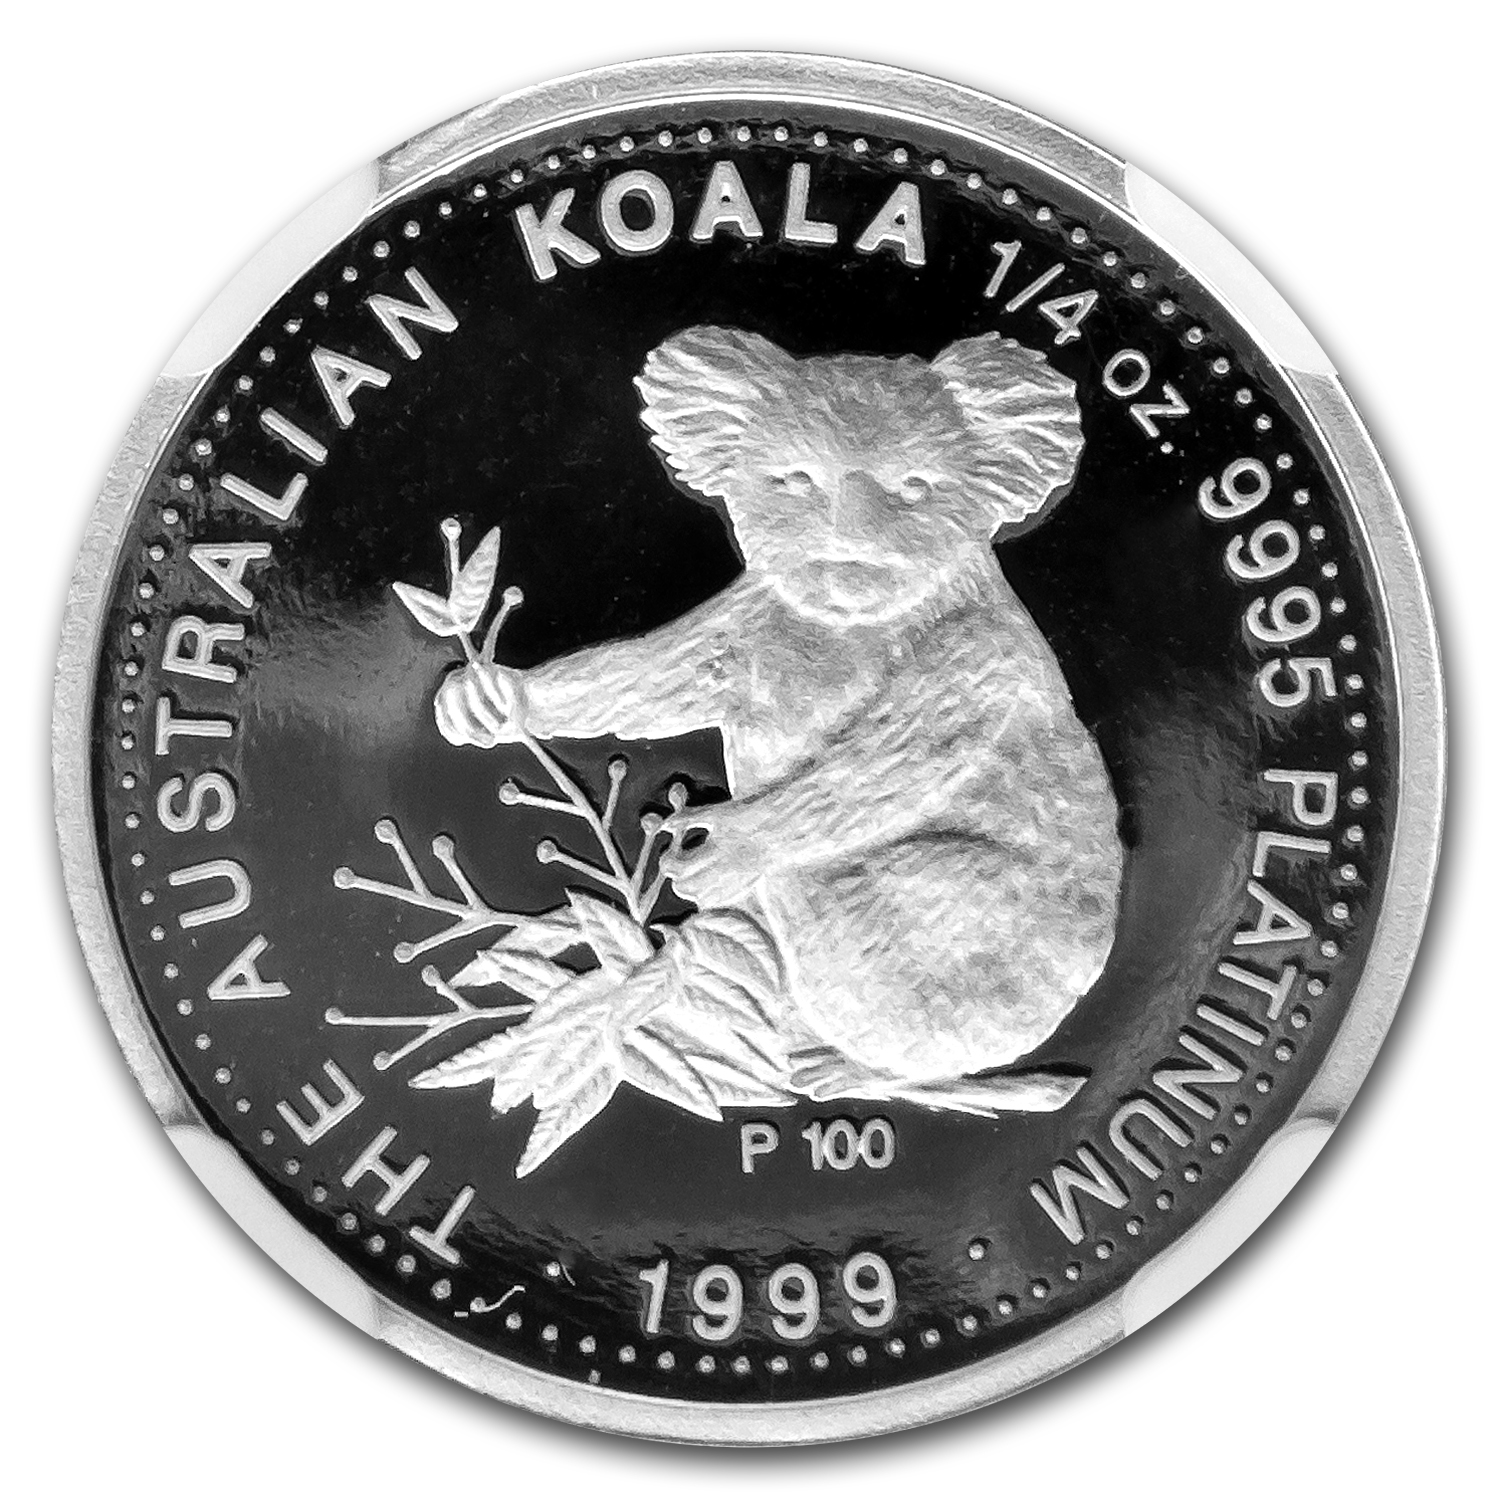 1999 Australia 1/4 oz Proof Platinum Koala PF-69 NGC